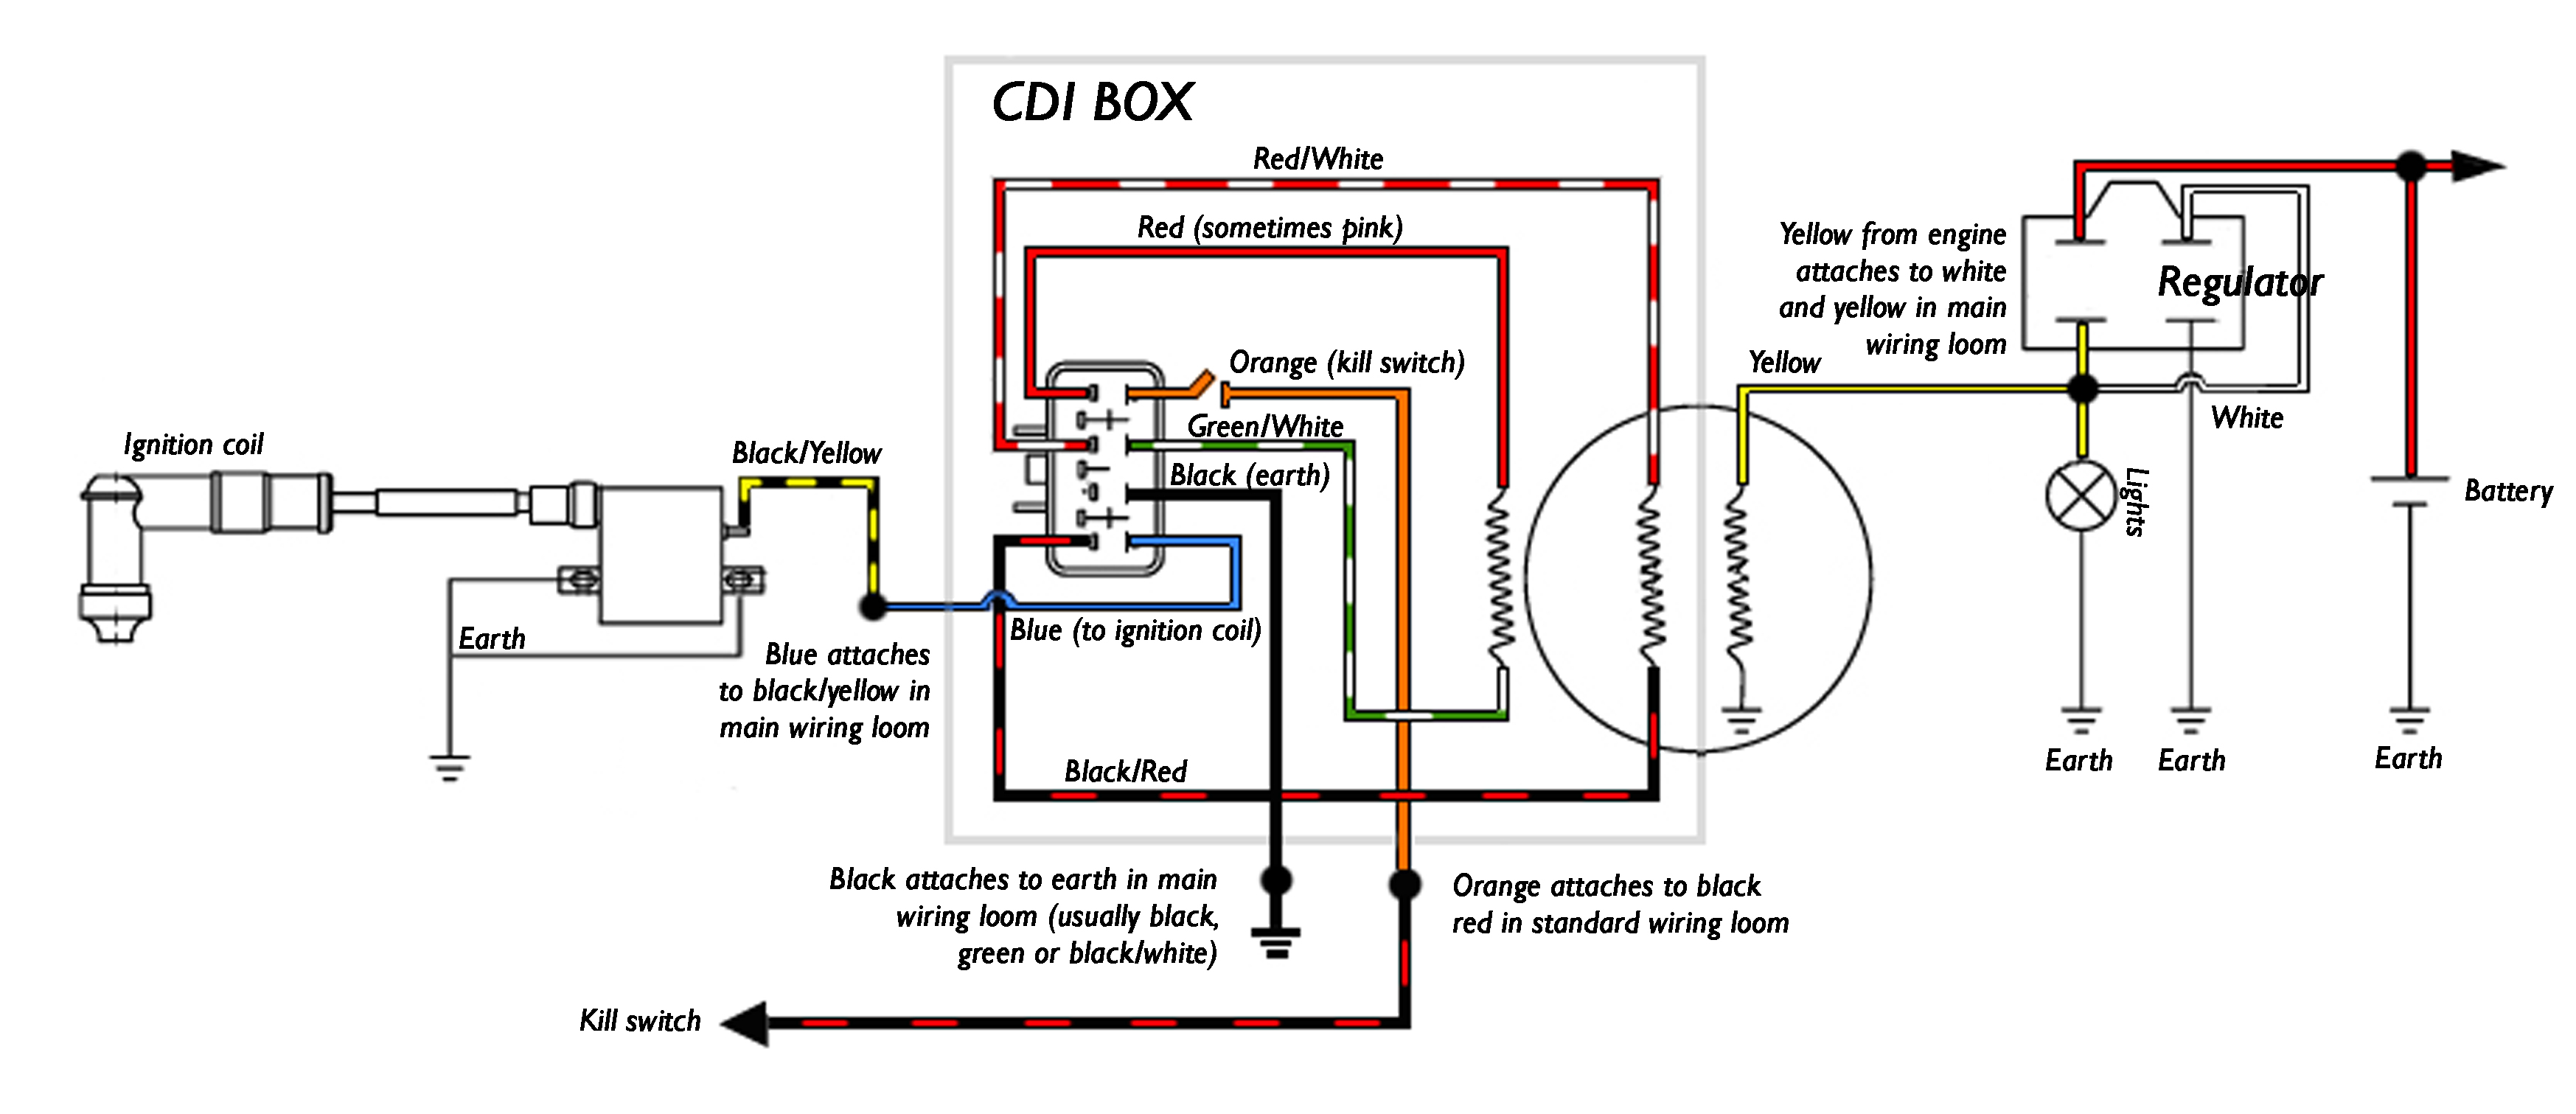 DIAGRAM] 4 Pin Regulator Wiring Diagram FULL Version HD Quality Wiring  Diagram - VENNDIAGRAMONLINE.NUITDEBOUTAIX.FRvenndiagramonline.nuitdeboutaix.fr